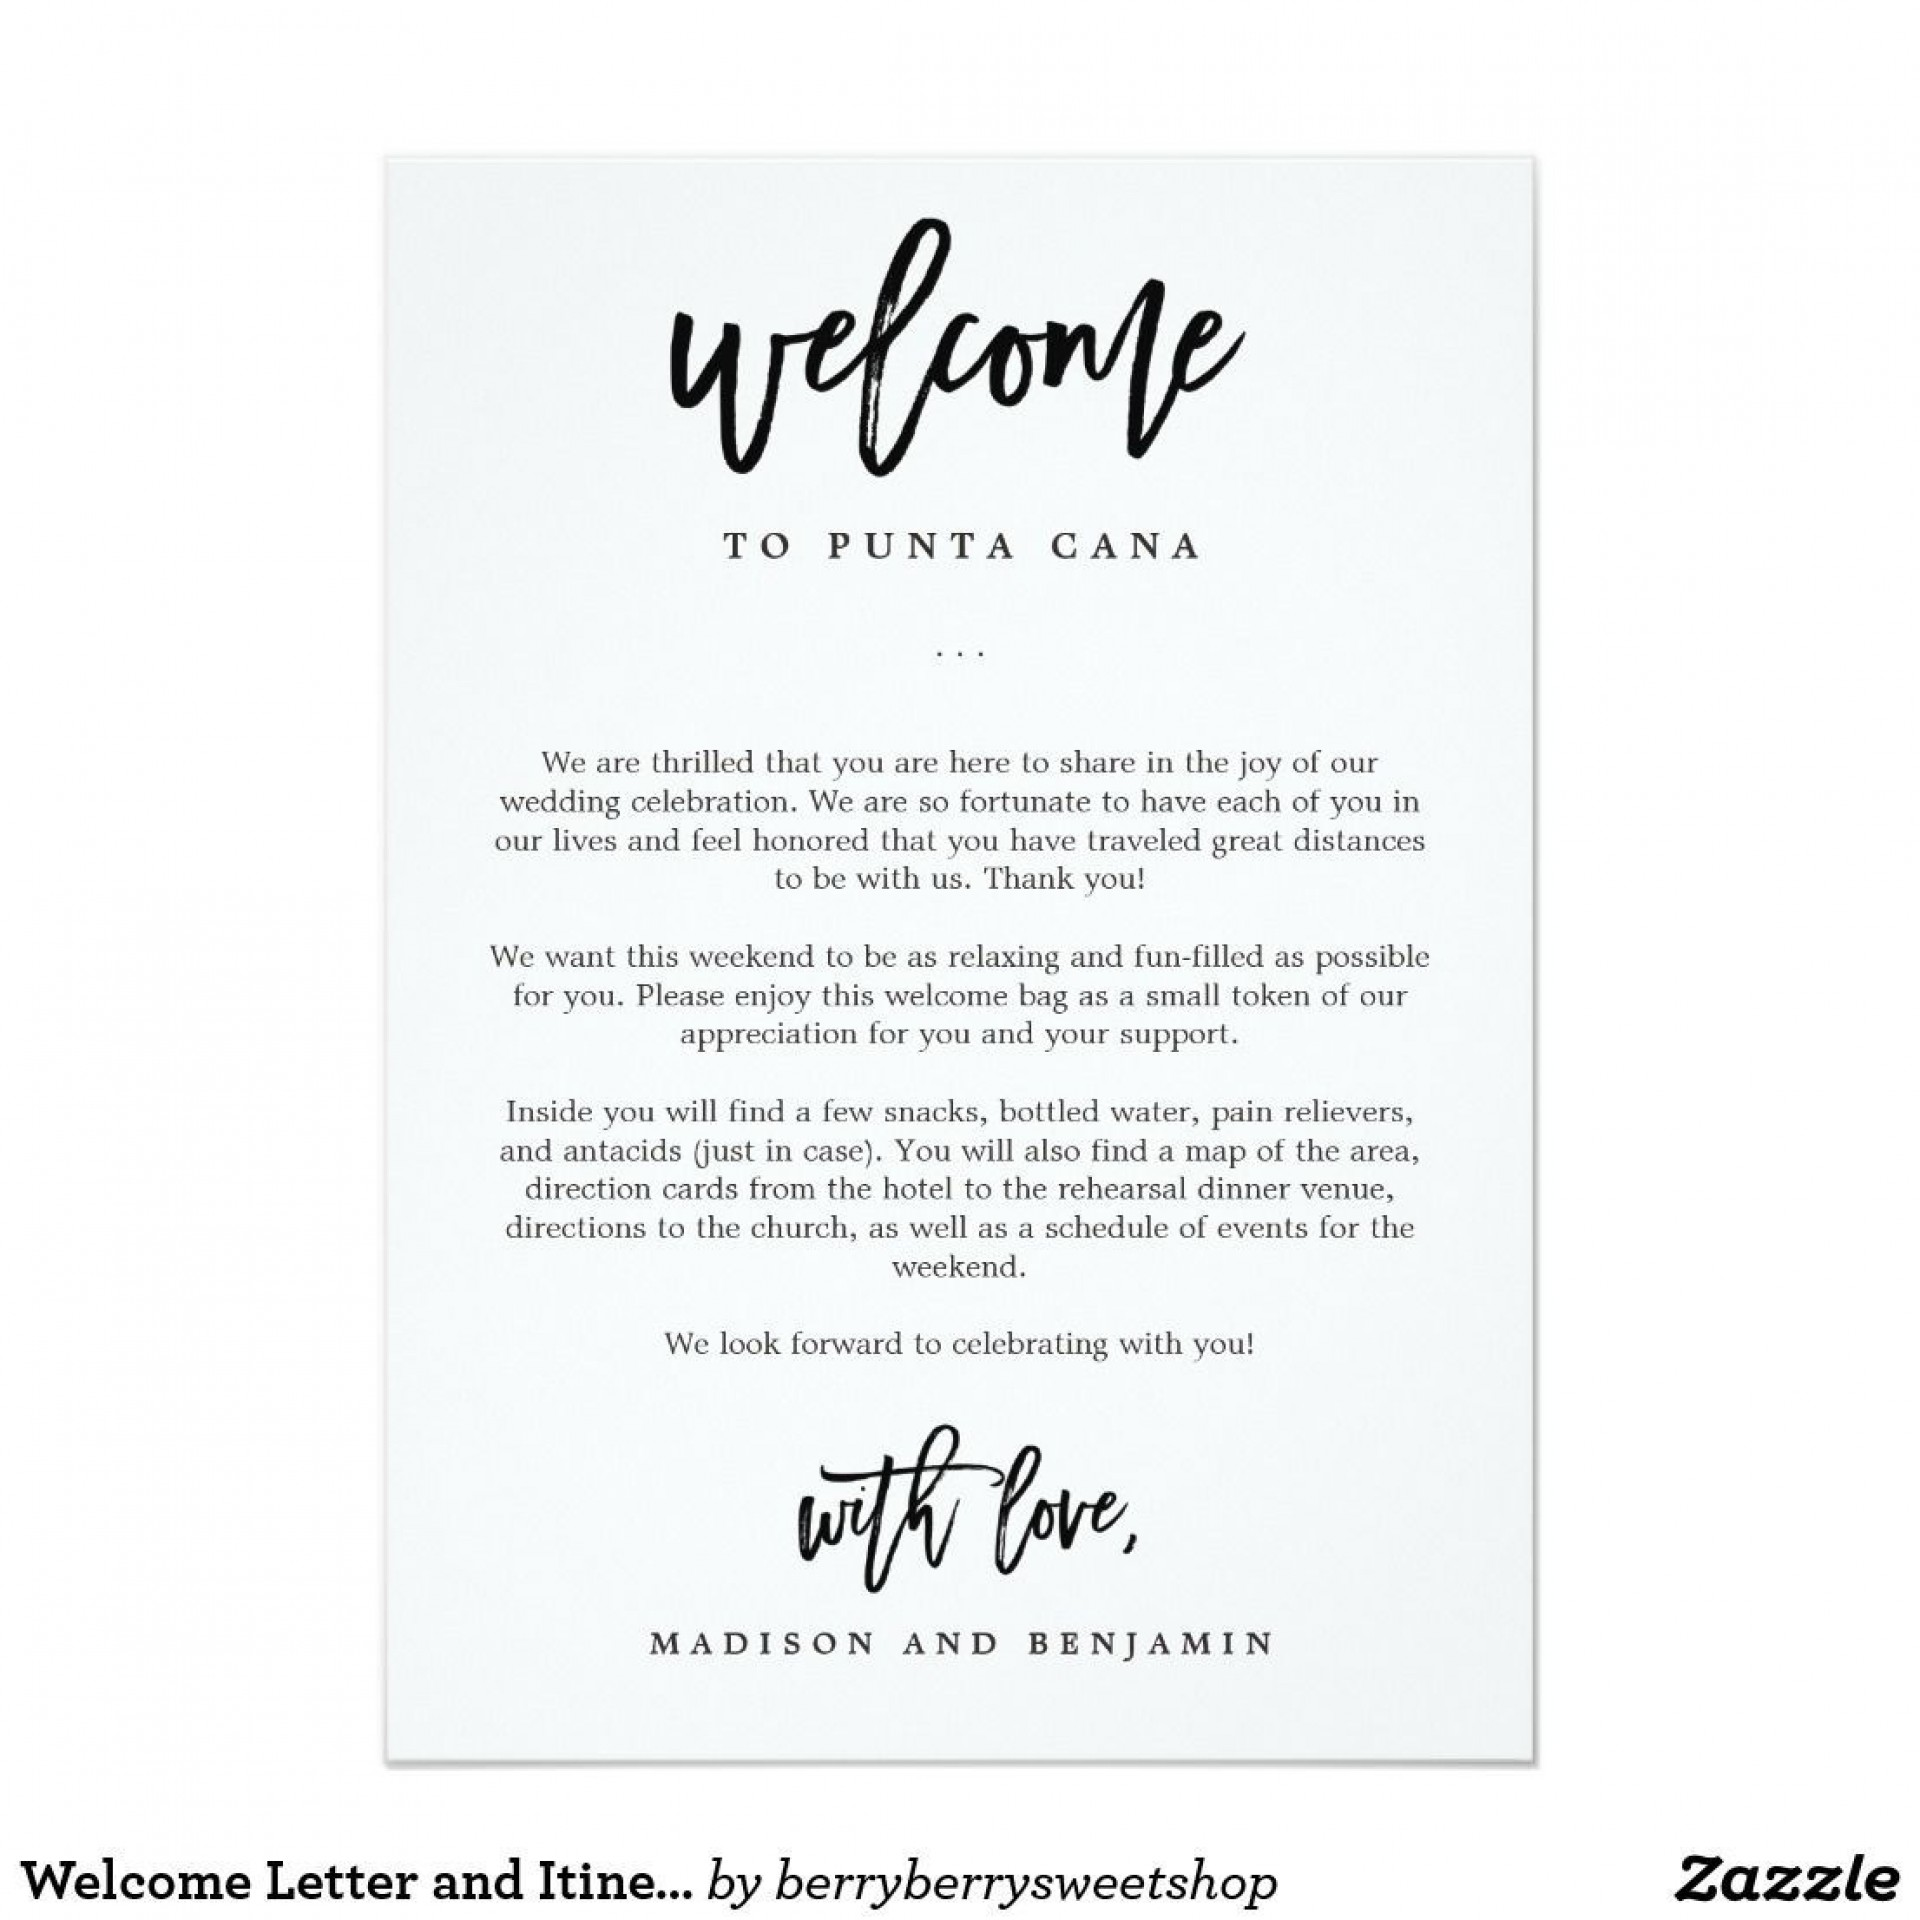 009 Stunning Wedding Hotel Welcome Letter Template Highest Quality 1920